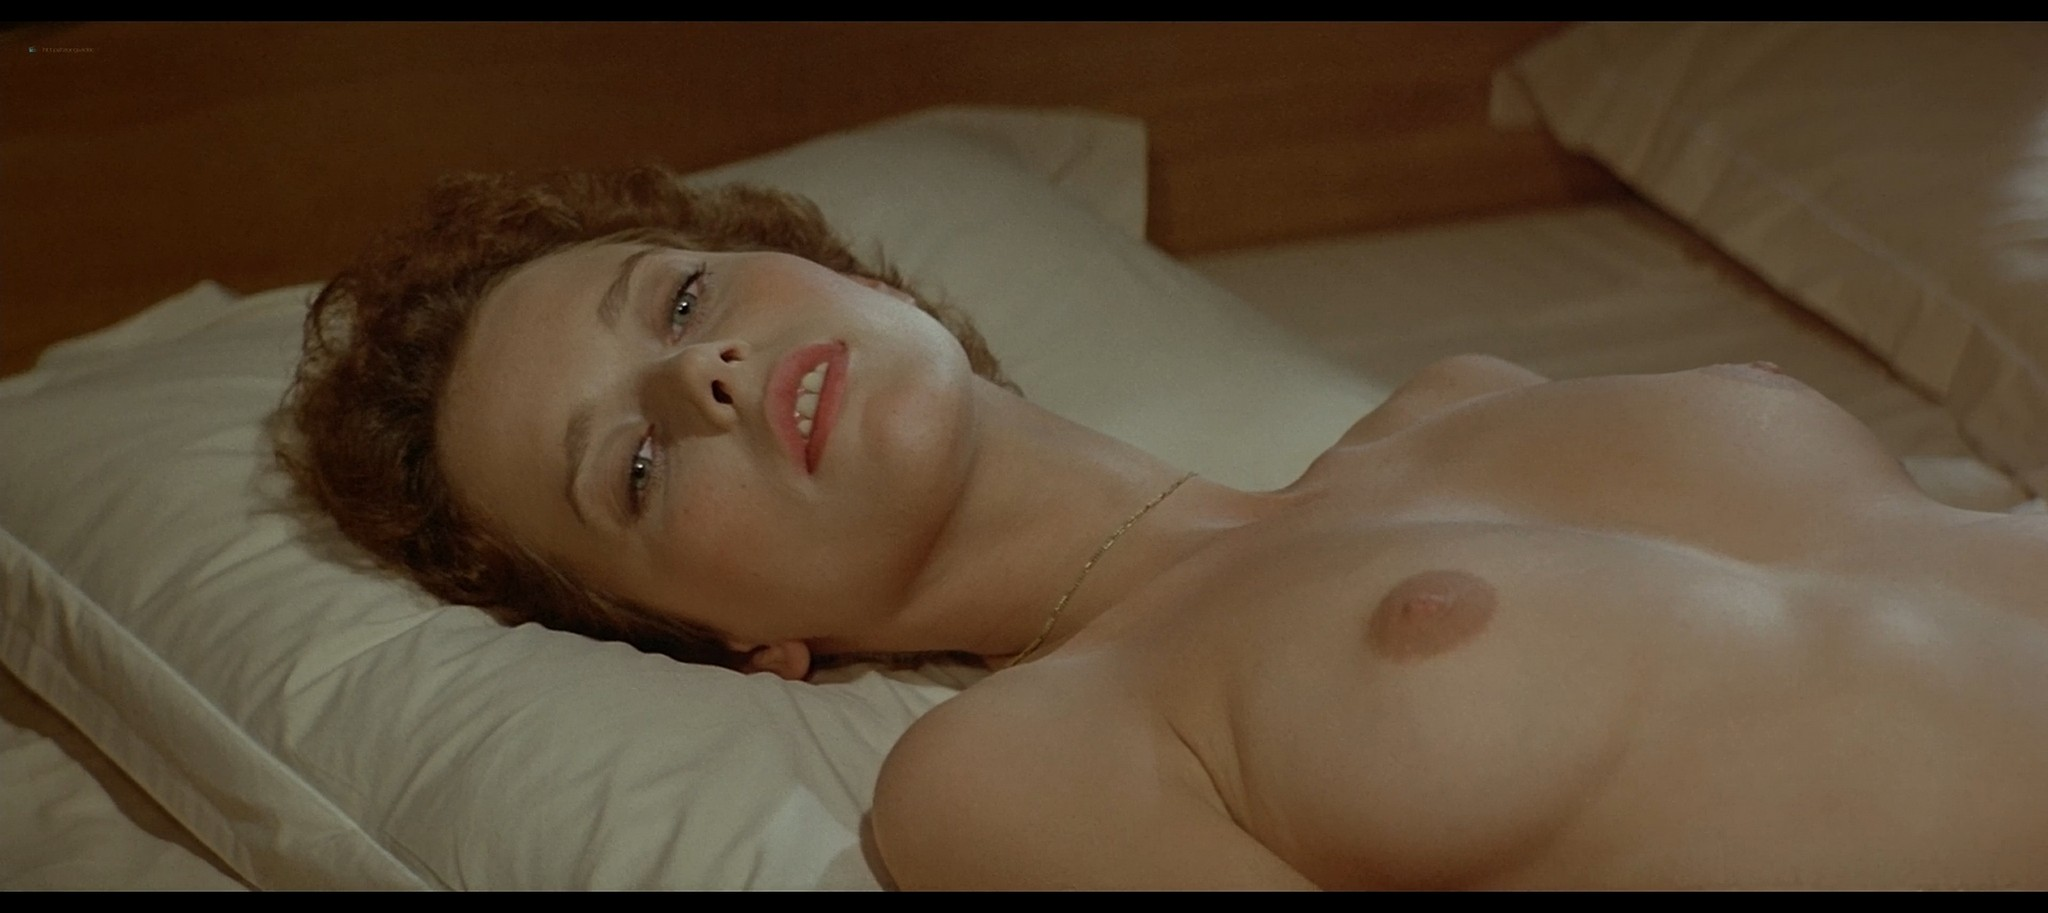 Sylvia Kristel nude full frontal Charlotte Alexandra and others nude sex Good bye Emmanuelle 1977 1080p BluRay 5